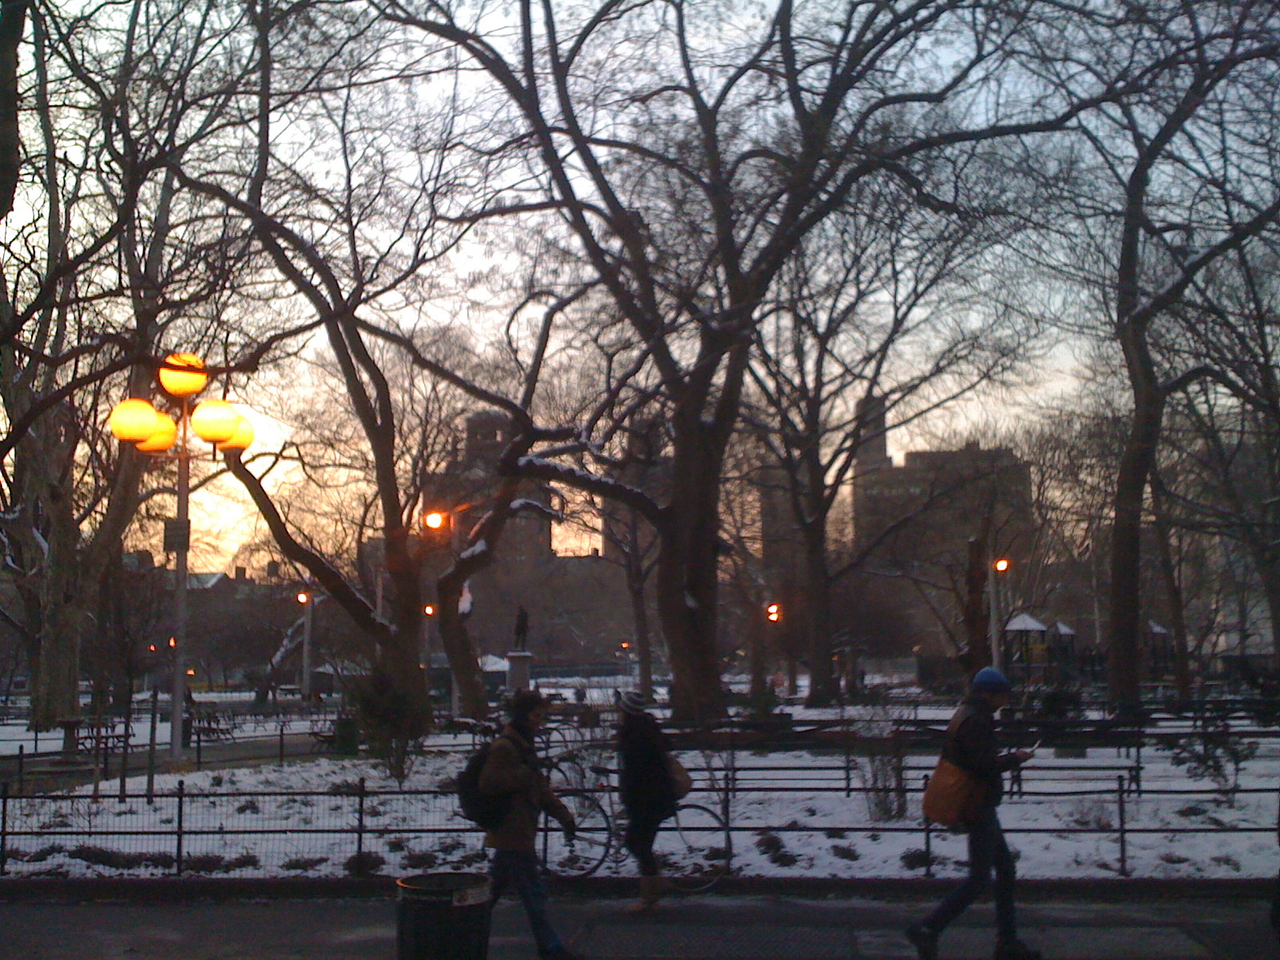 Washington Sq. Park. What a beaut.